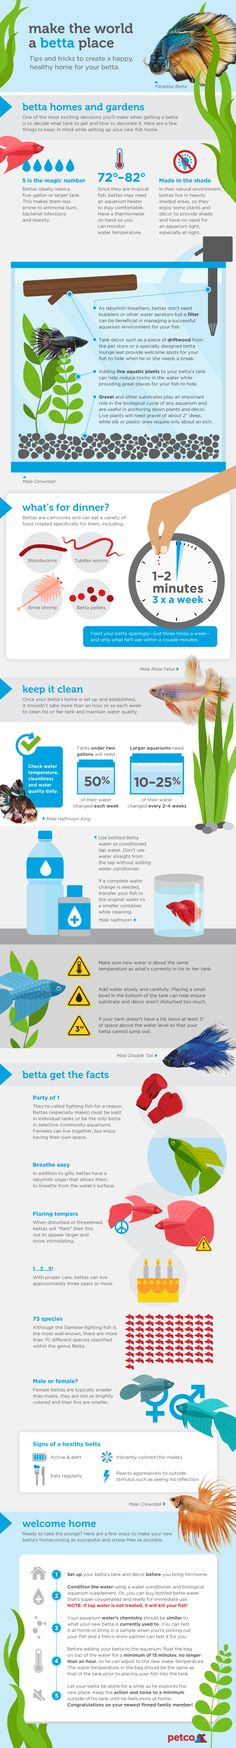 Petco_BettaCare_Infographic.v5.png Fish care and tips for Betas